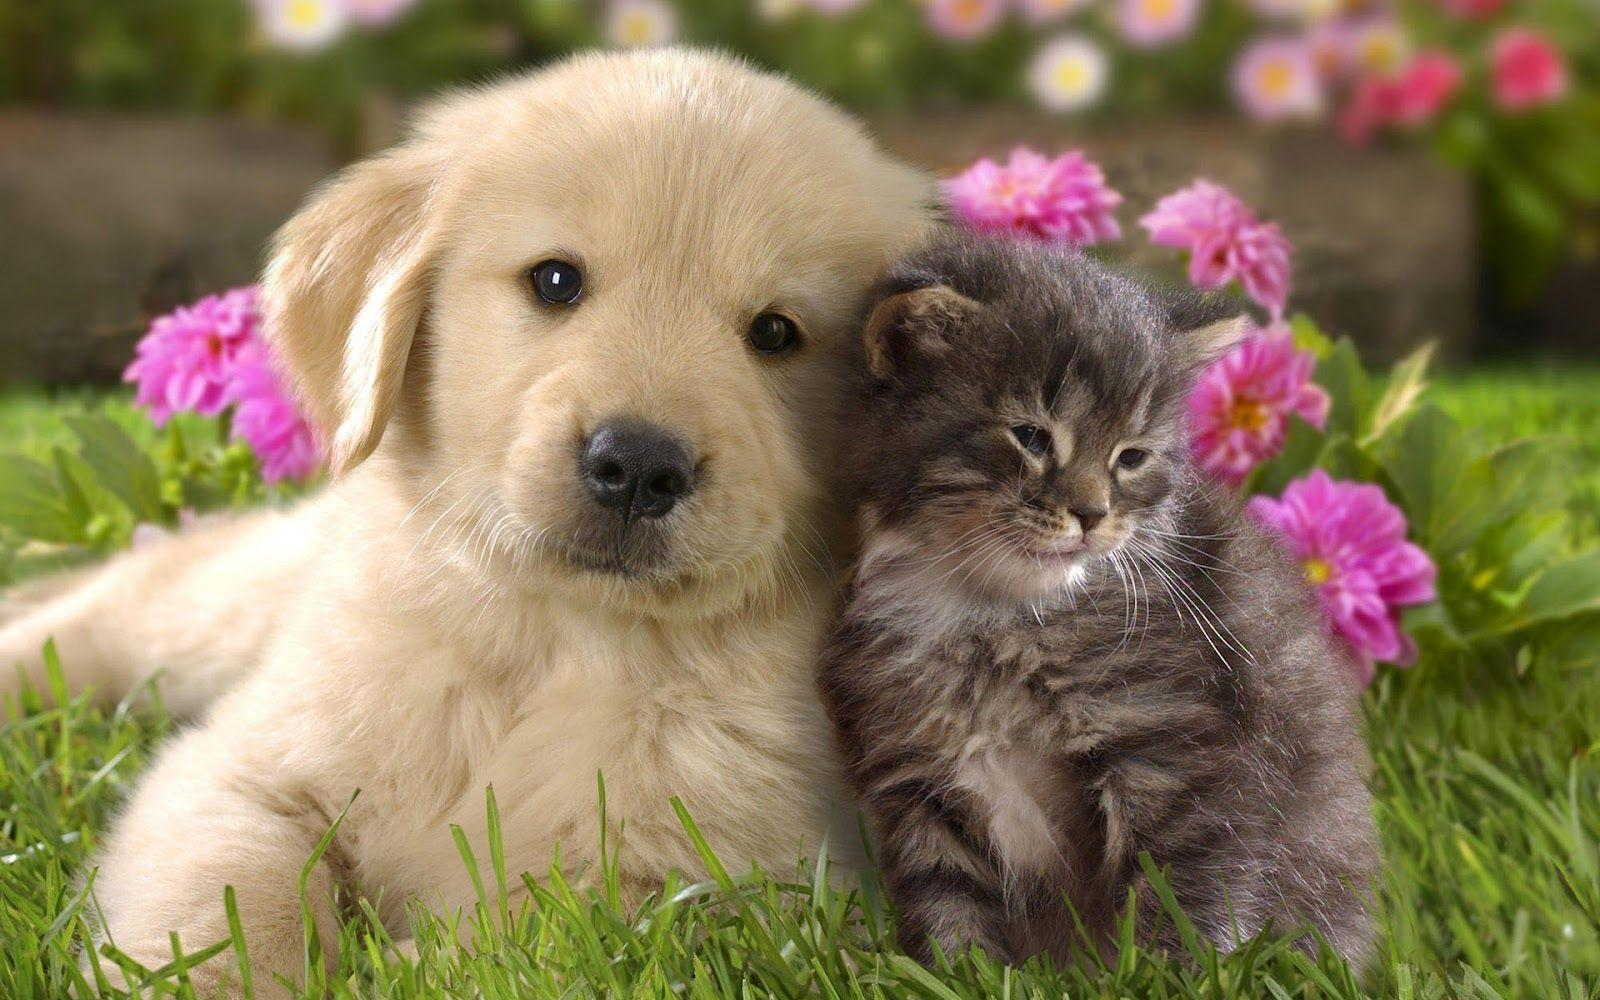 cat And Dog Love Wallpaper : cat And Dog Wallpapers - Wallpaper cave